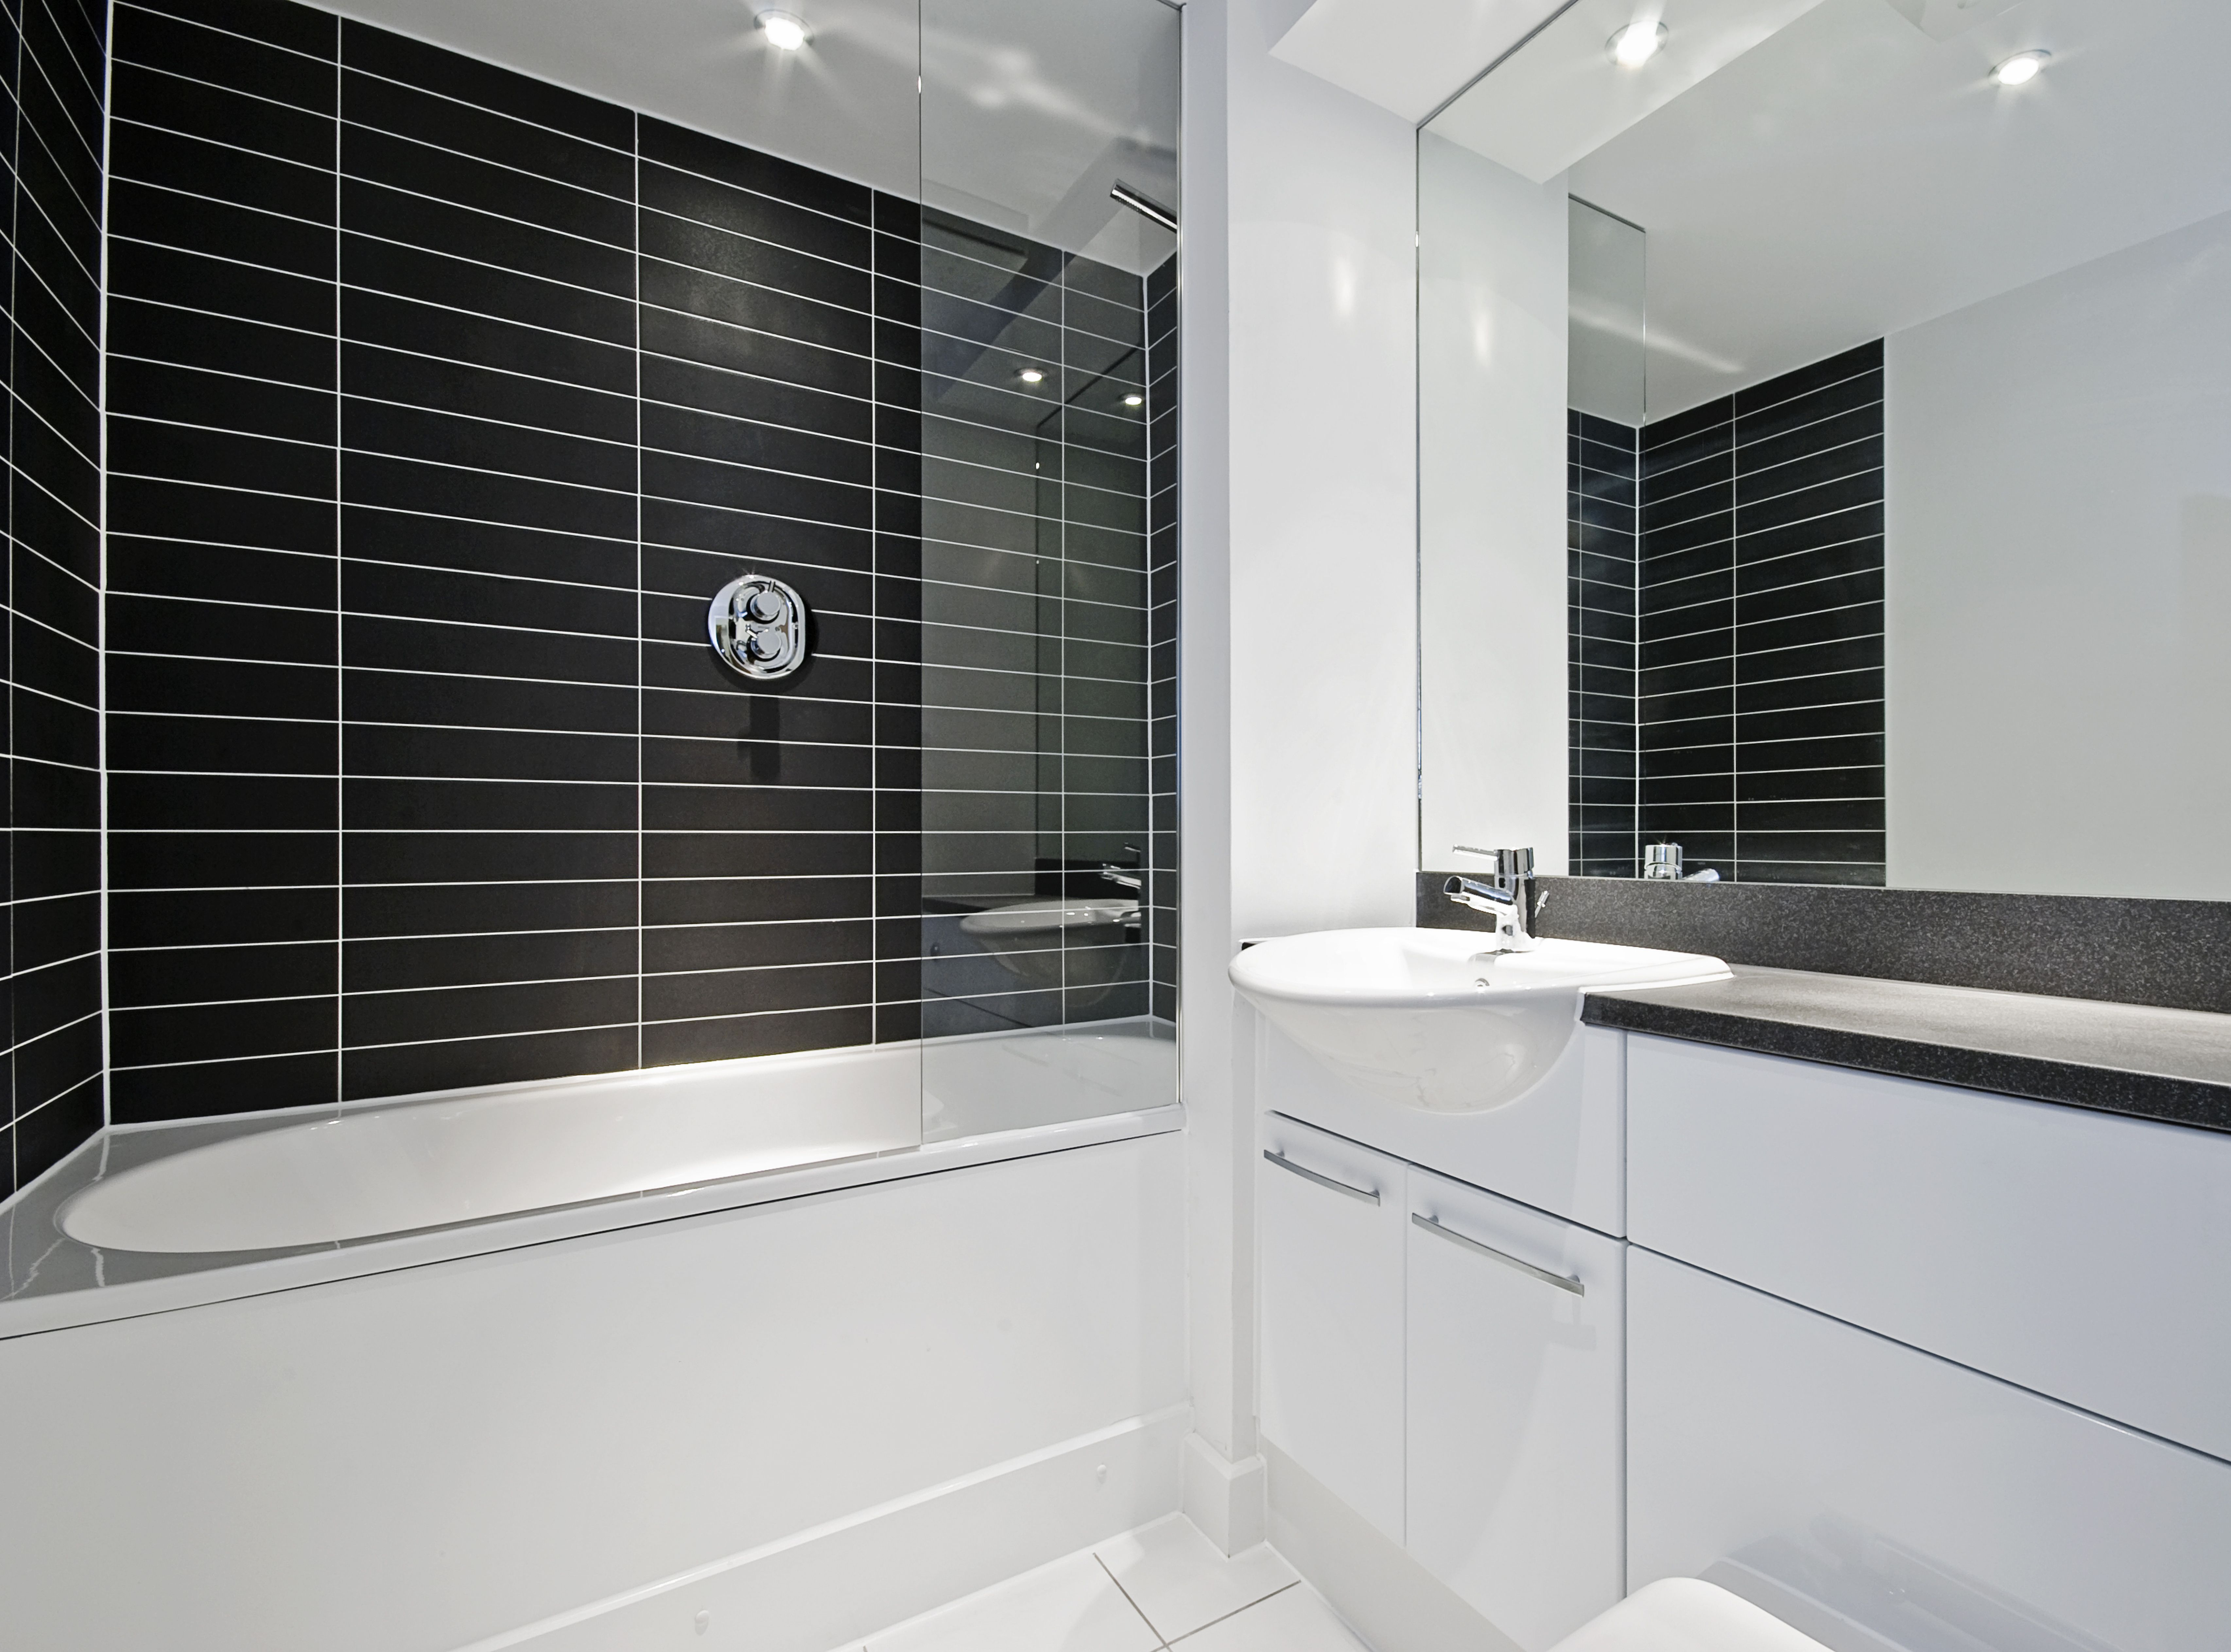 Bathroom tile panels | ideas | Pinterest | Bathroom tiling, Bathroom ...